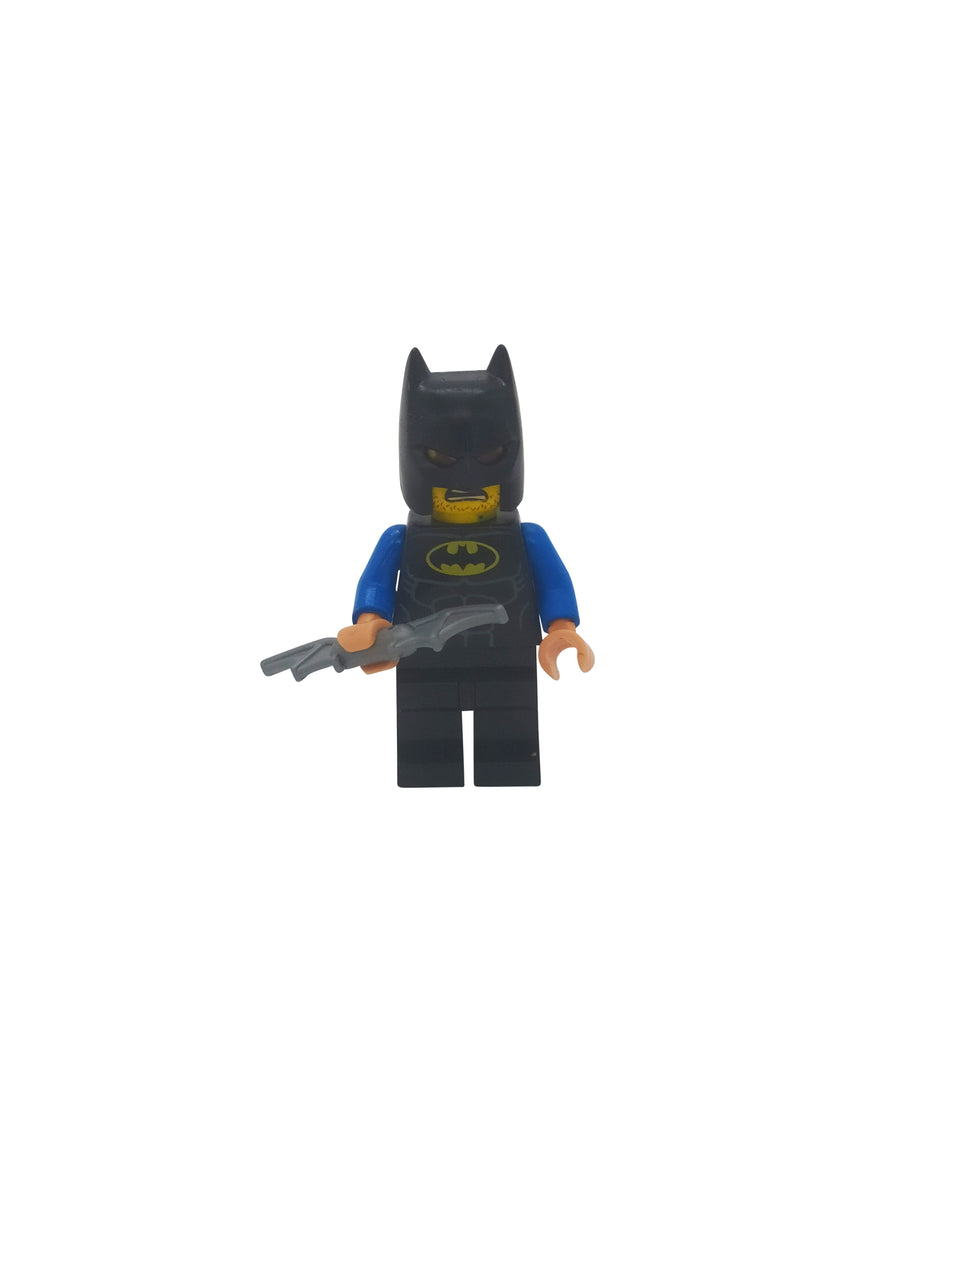 Batman Lego Man with accessories